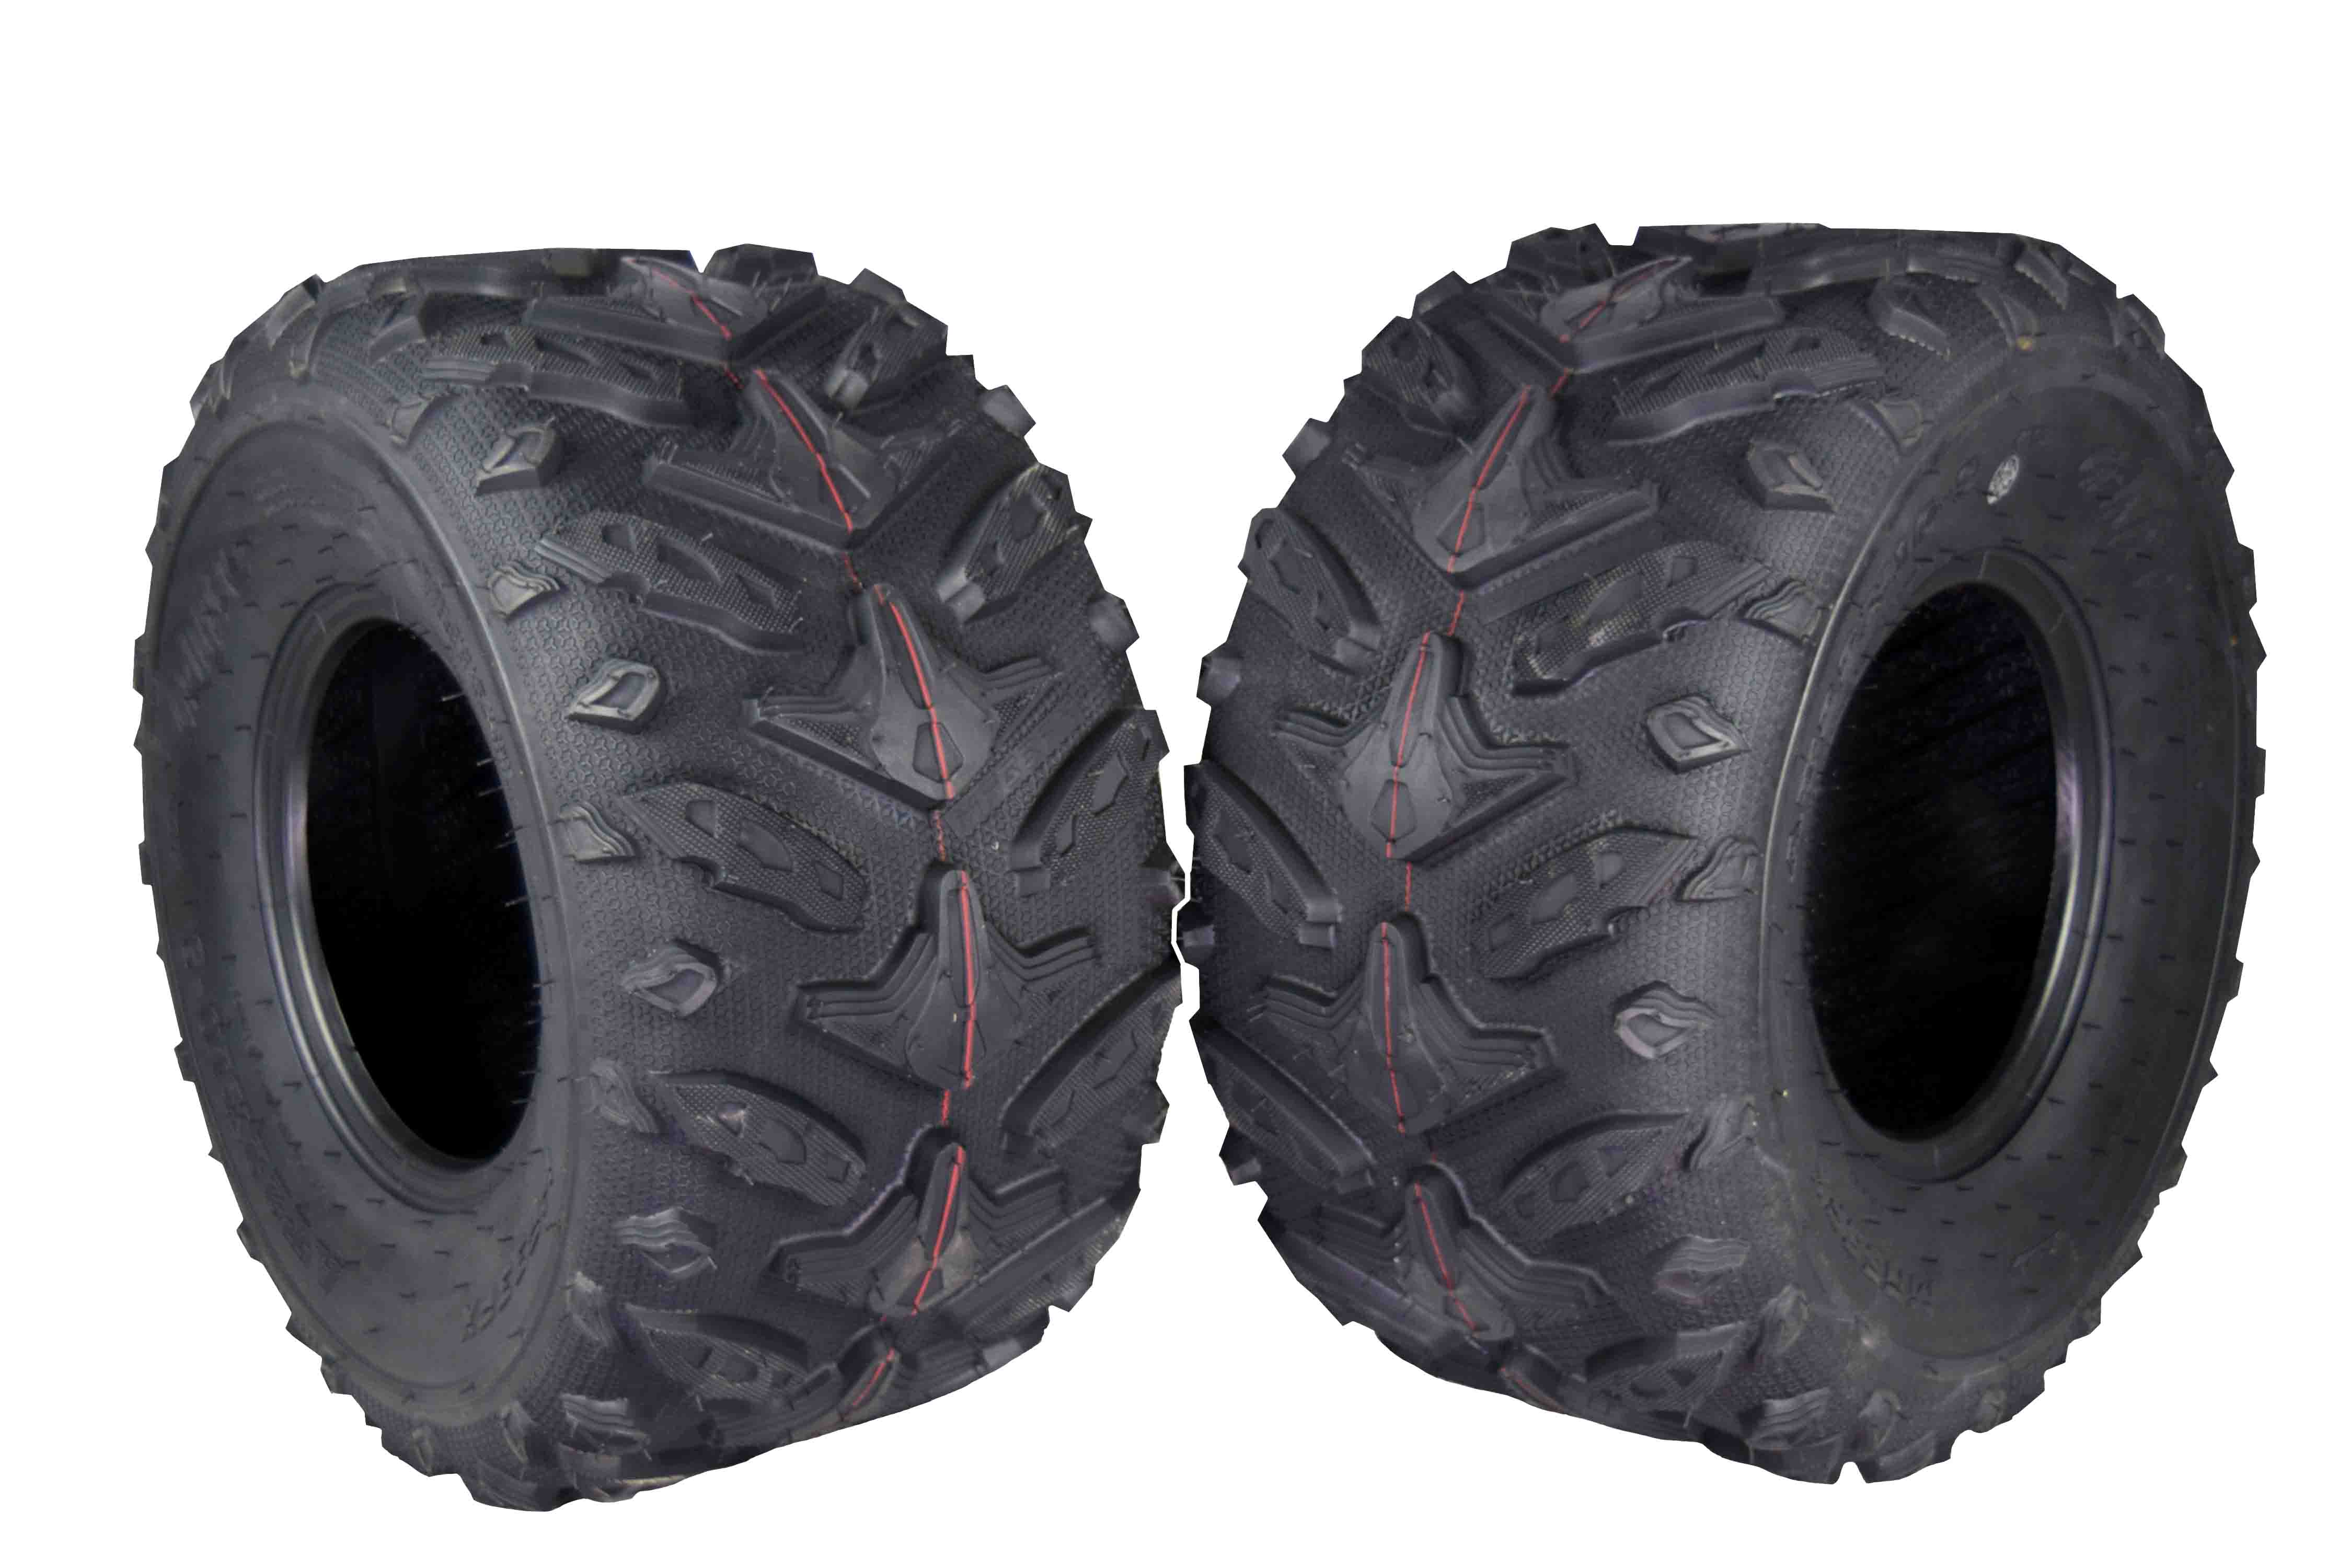 MASSFX-Grinder-22x10-9-Dual-Compound-6-PLY-Rear-ATV-Tire-2-Pack-image-1